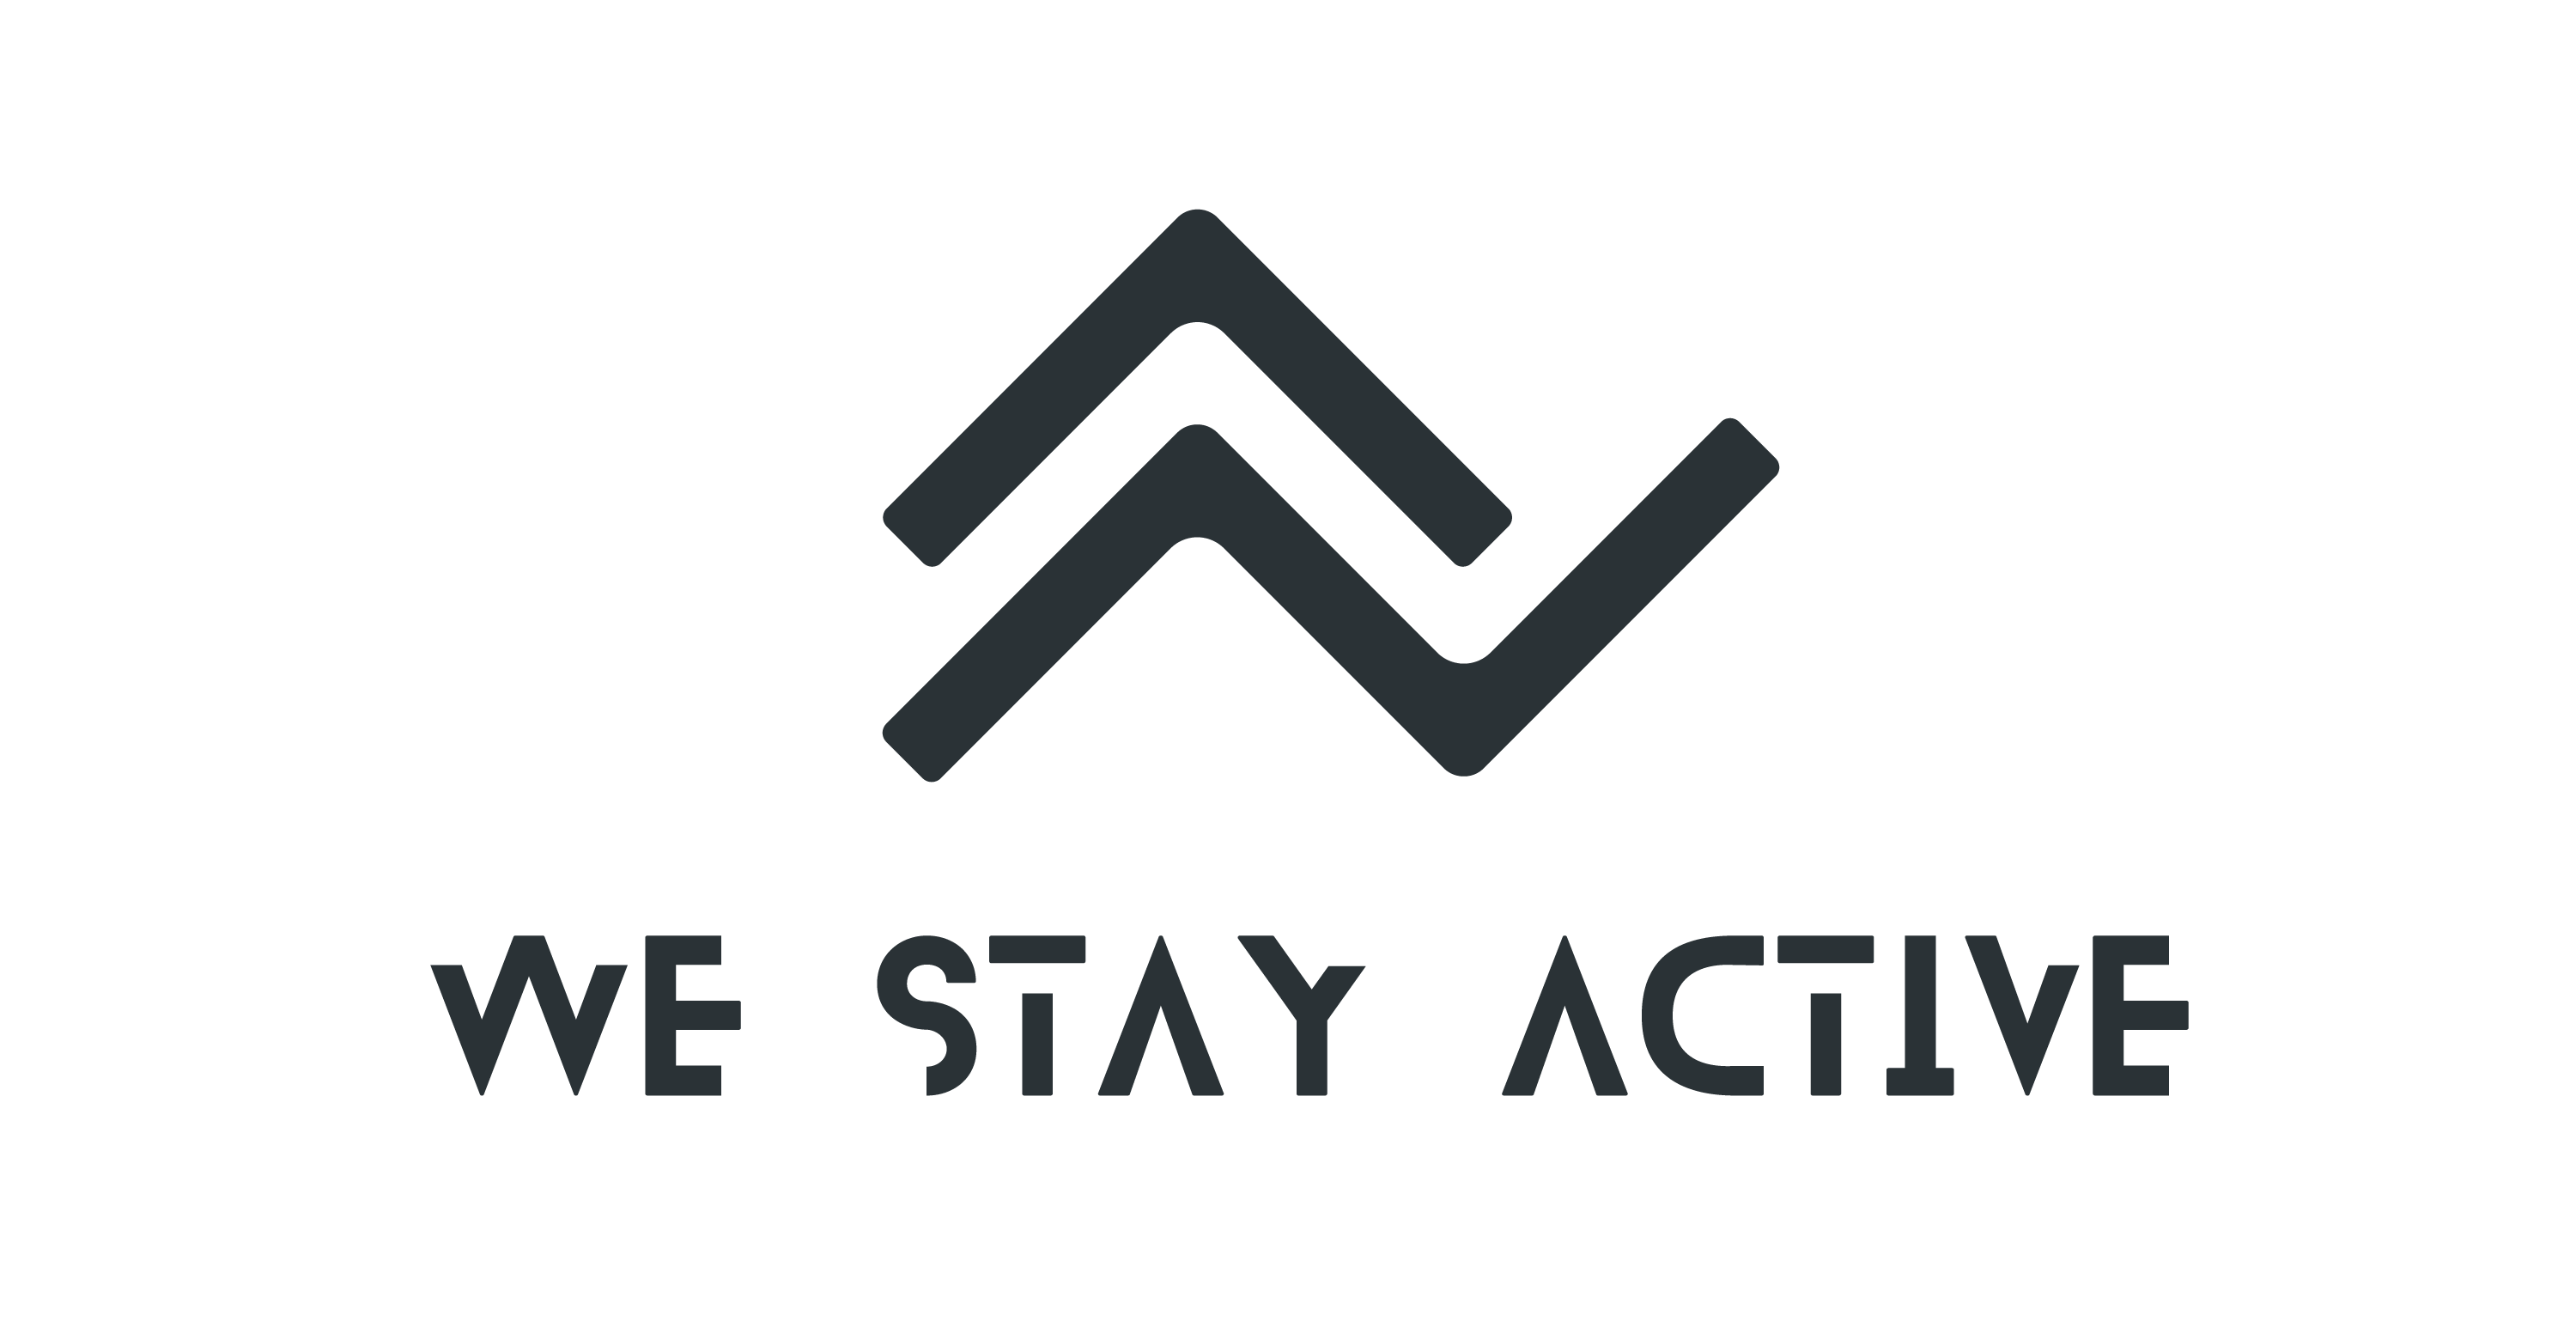 WE STAY ACTIVE -- LOGO